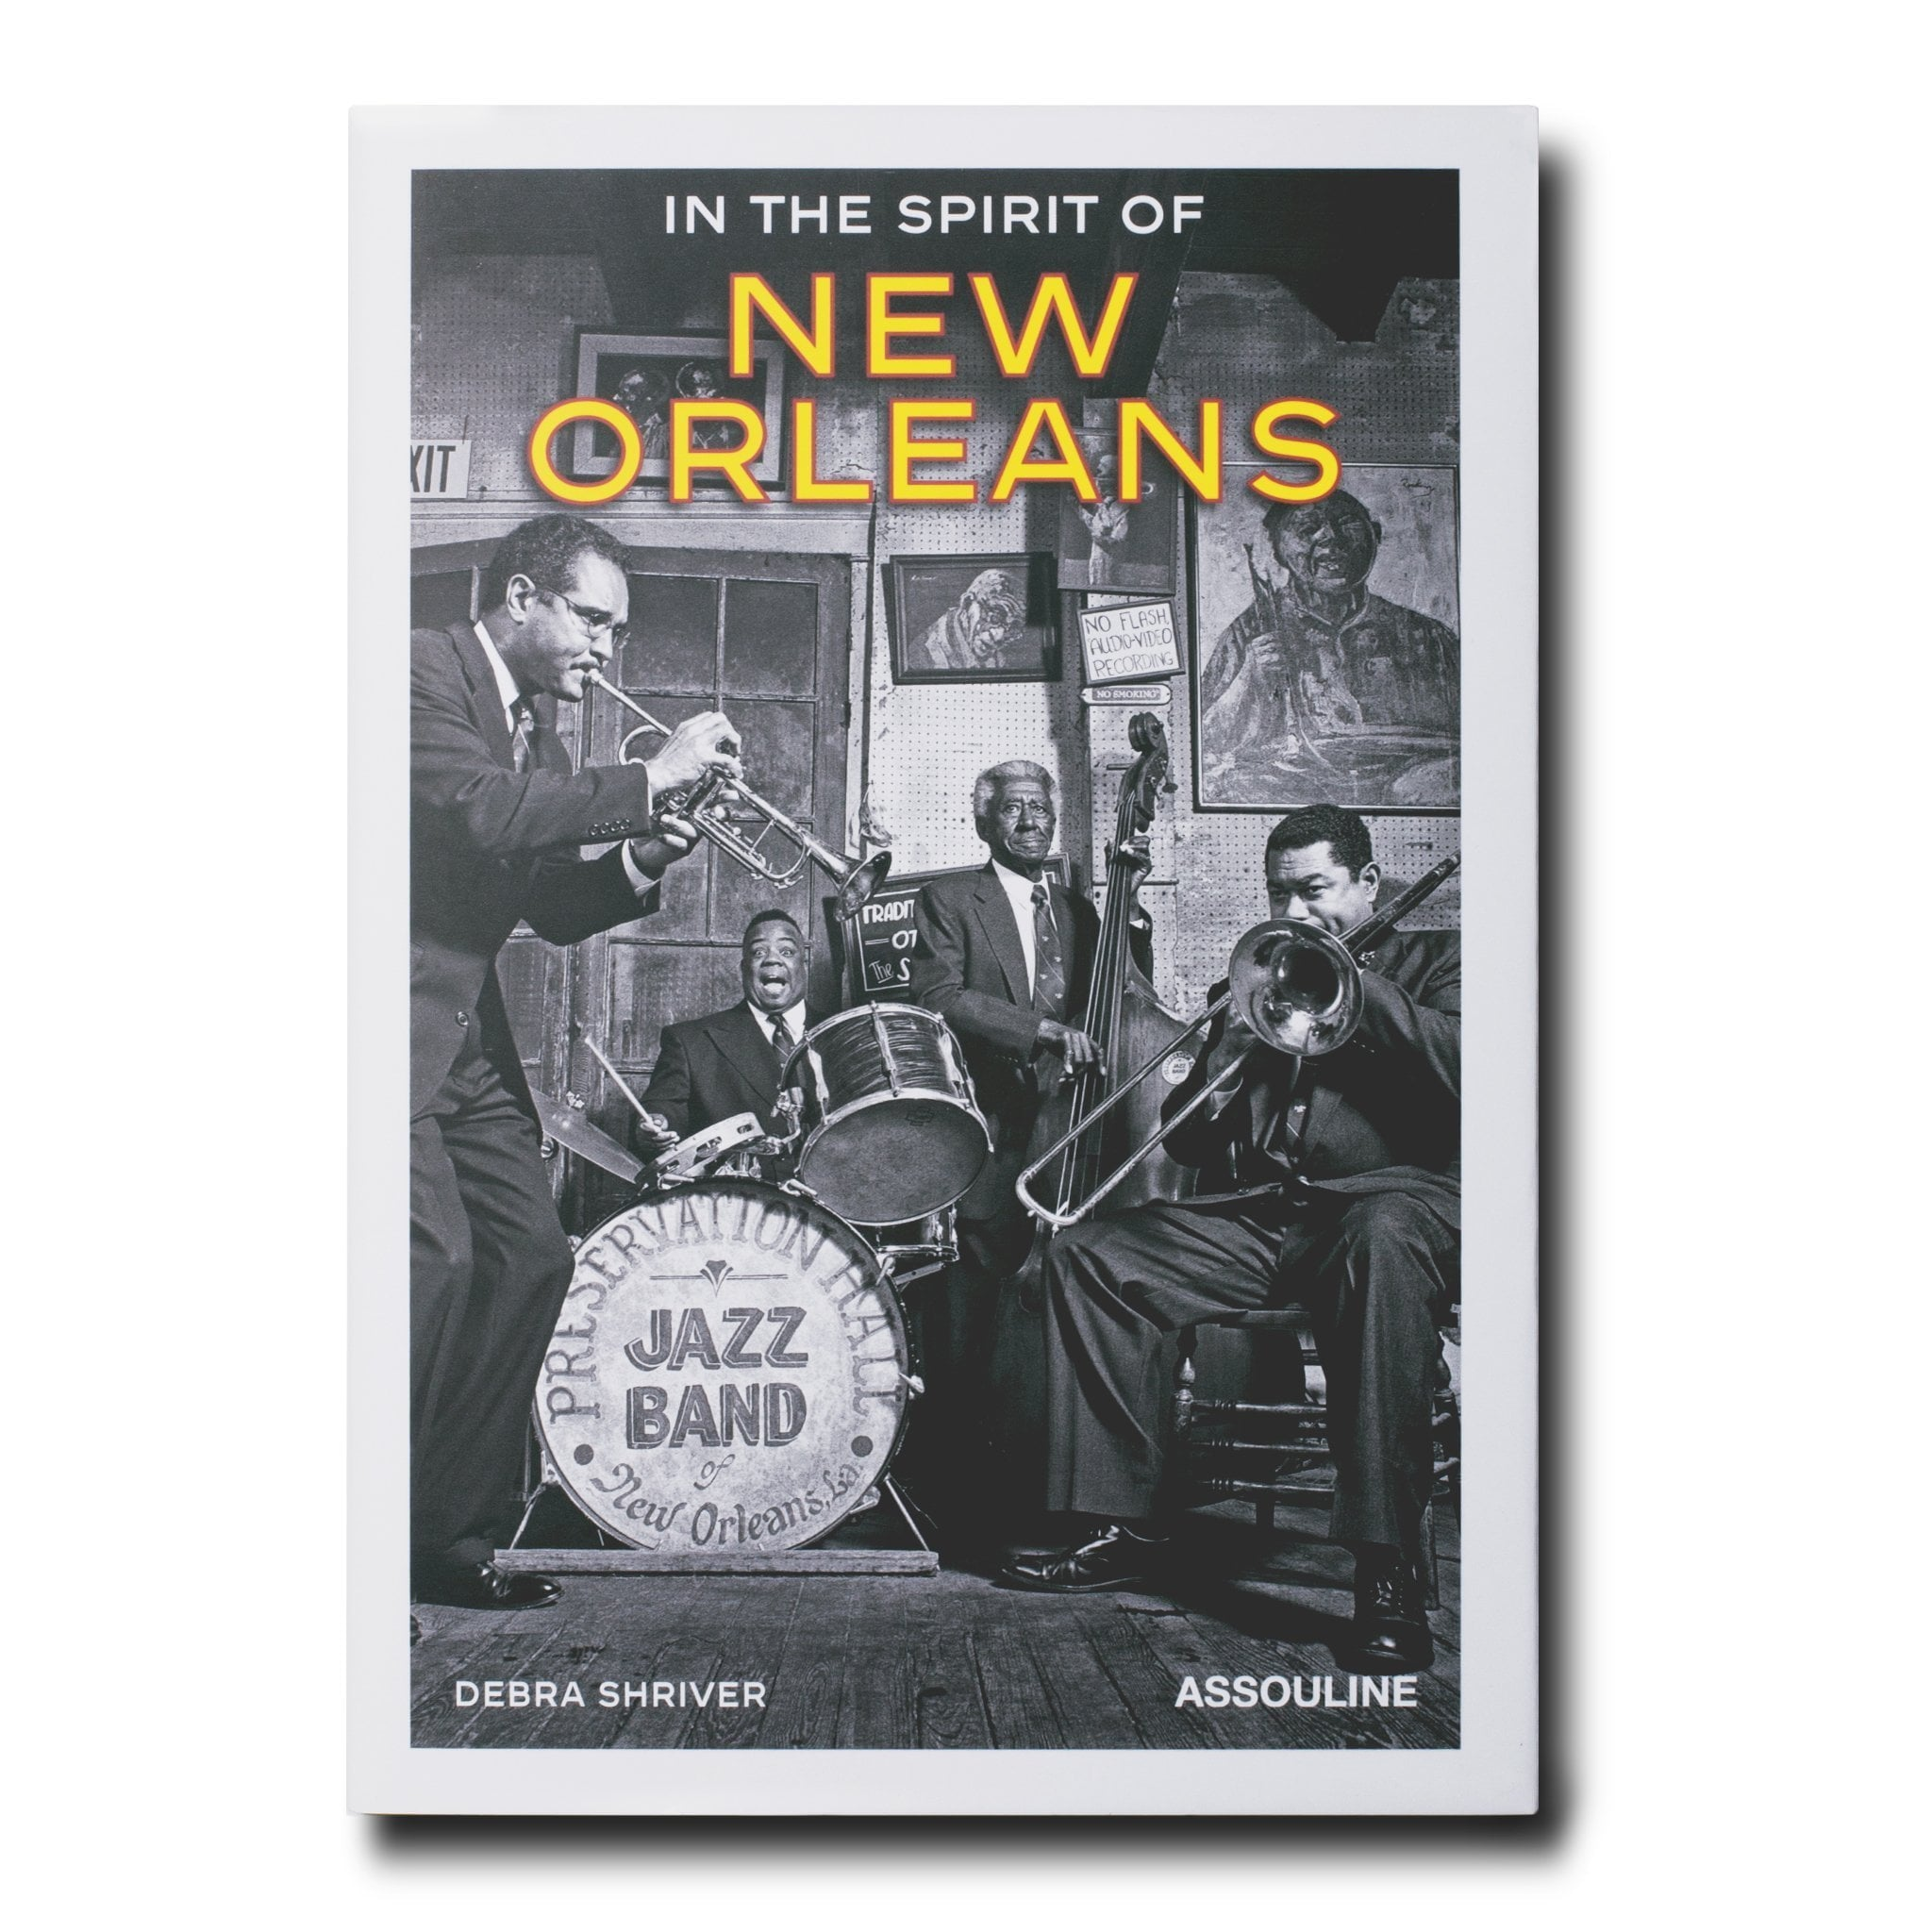 In the Spirit of New Orleans - Assouline